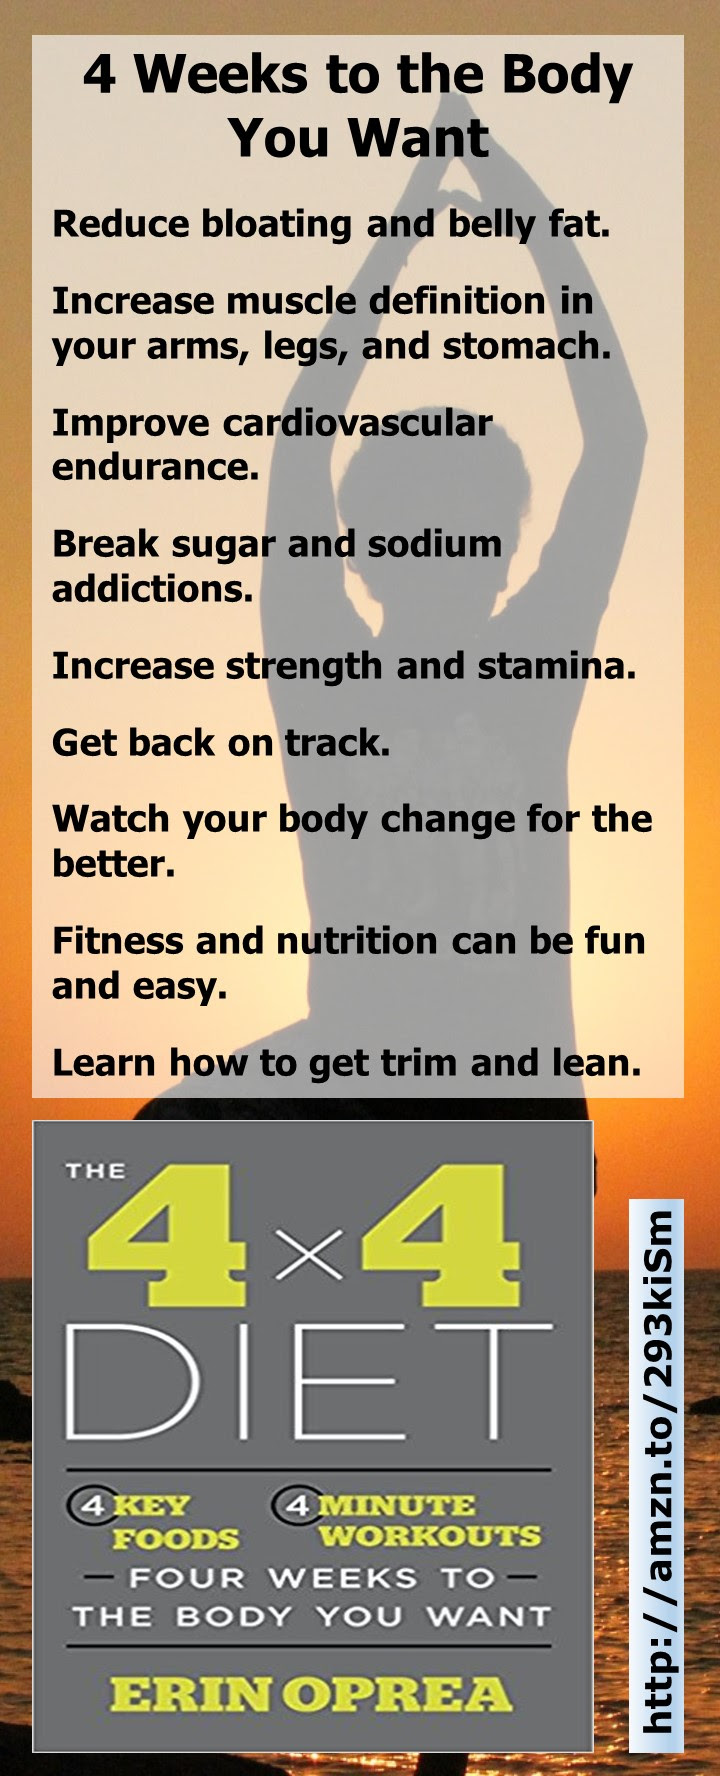 4 Weeks To The Body You Want The 4 X 4 Diet Celebrity Weight Loss Tips